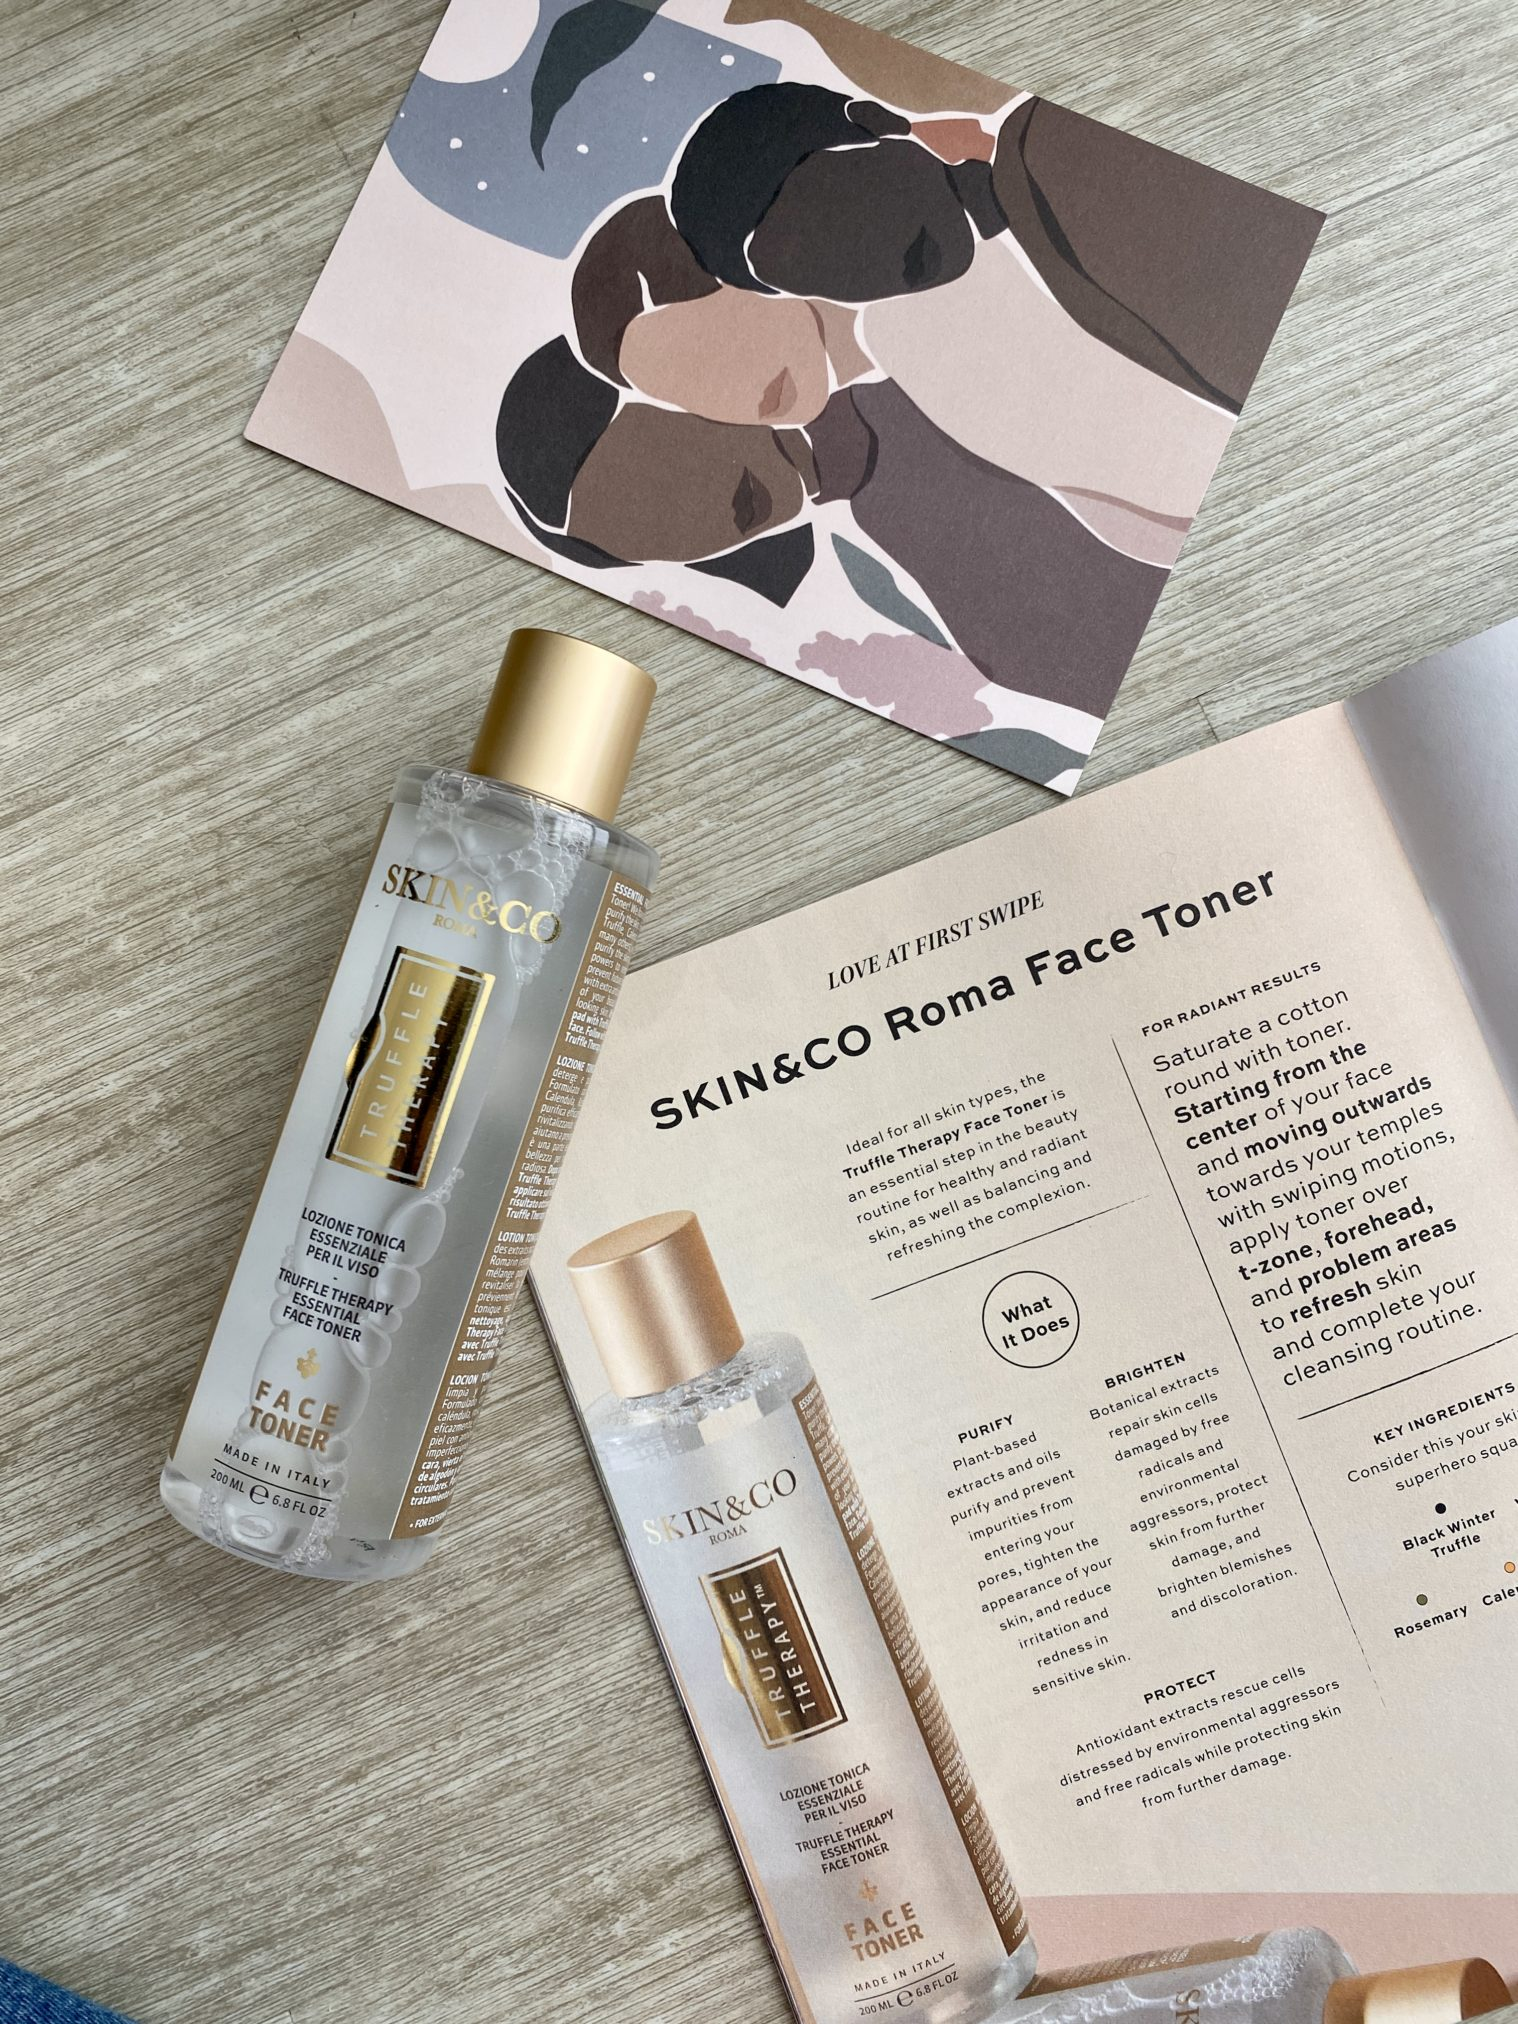 SKIN & CO. Truffle Therapy Face Toner - Causebox Winter 2020 Review - SubscriptionBoxExpert